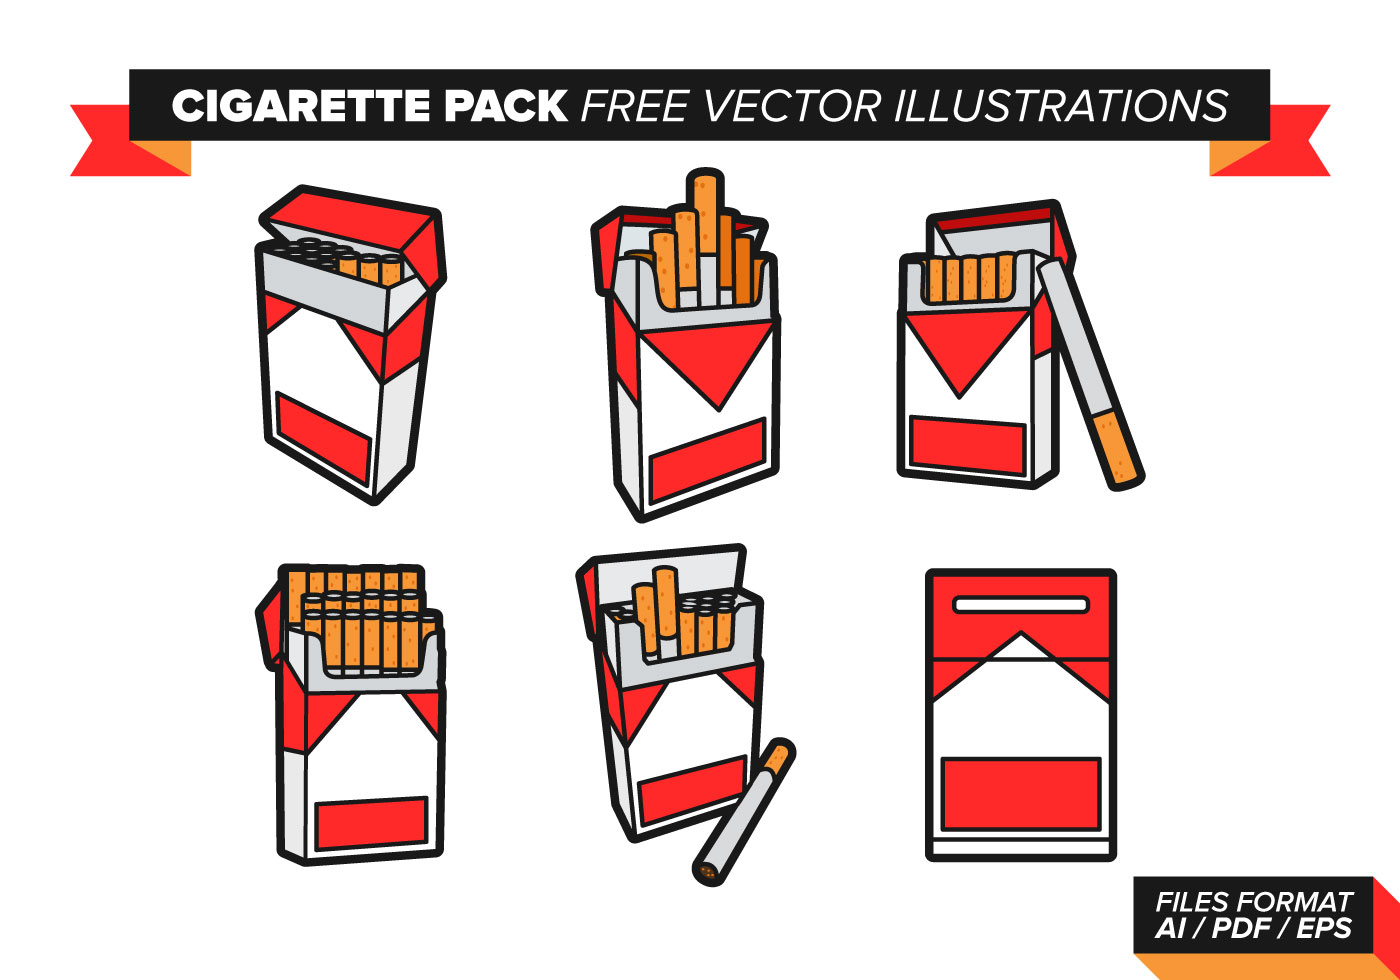 Cigarette Pack Vector Illustrations Download Free Vector